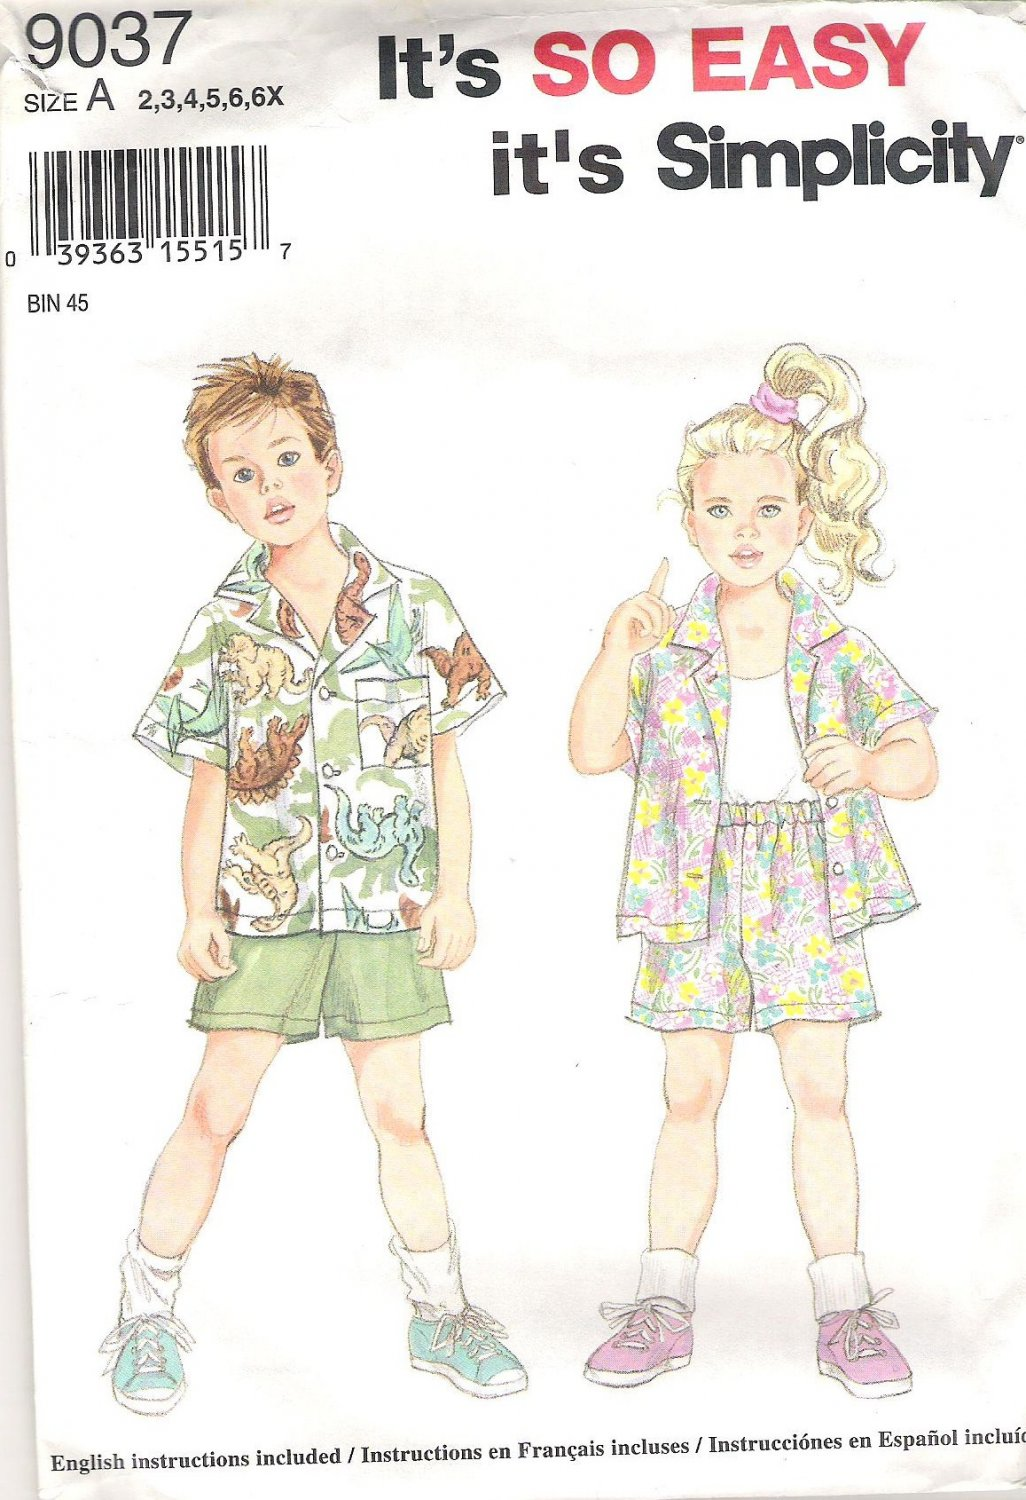 1994 Simplicity 9037 Pattern Girls Childs Shirt and Shorts  Size 2-6X  Partial Cut to 6X